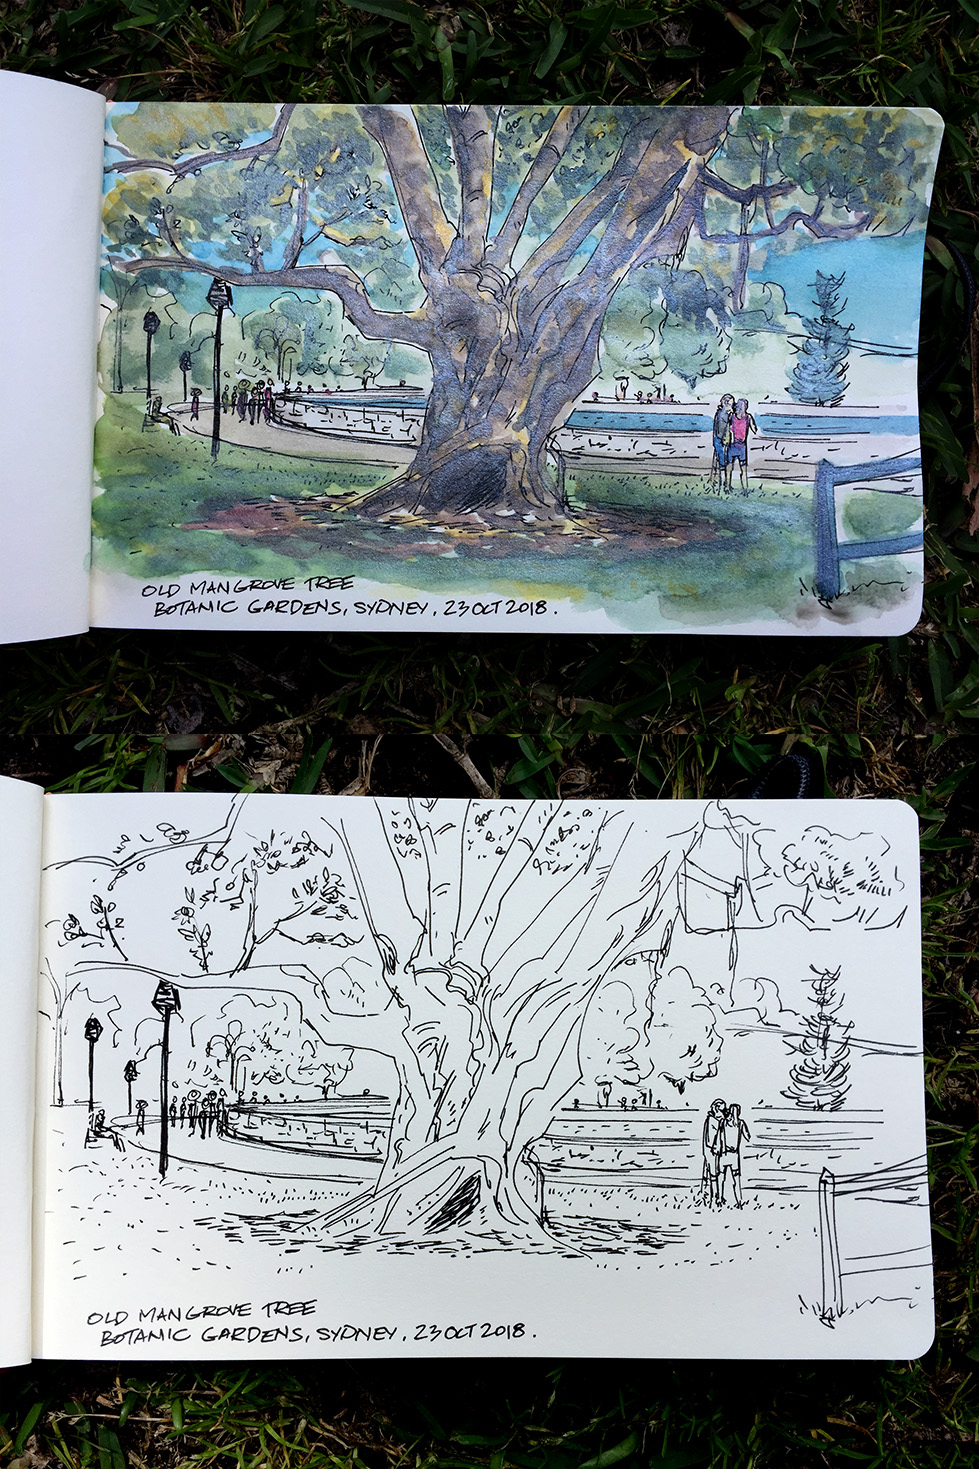 Under the Old Mangrove Tree at the Royal Botanic Gardens, Sydney.